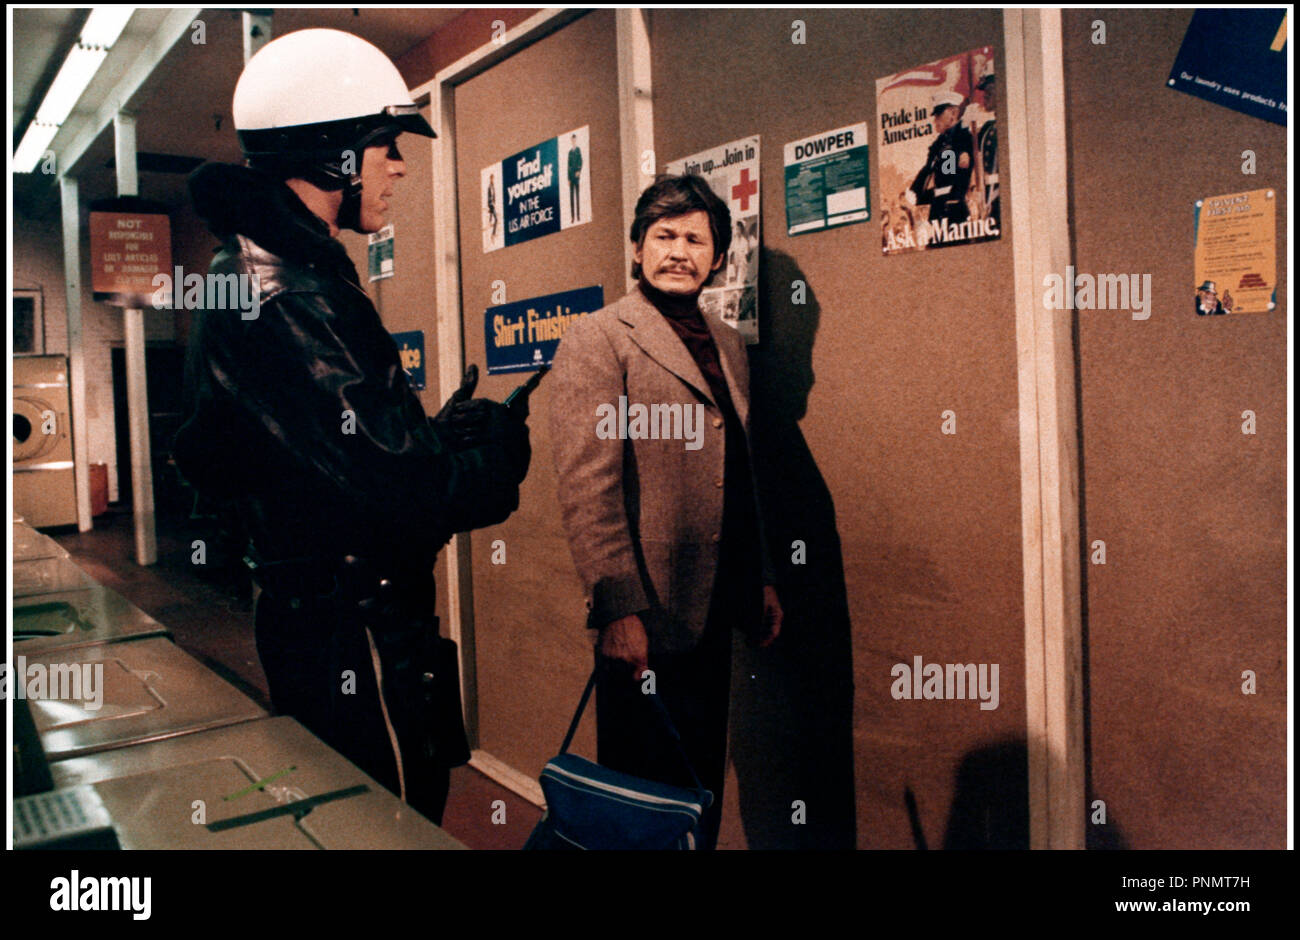 Prod DB © Warner Bros. / DR MONSIEUR SAINT-IVES (ST. IVES) de J. Lee Thompson 1976 USA avec Charles Bronson d'apres le roman de Ross Thomas - Stock Image